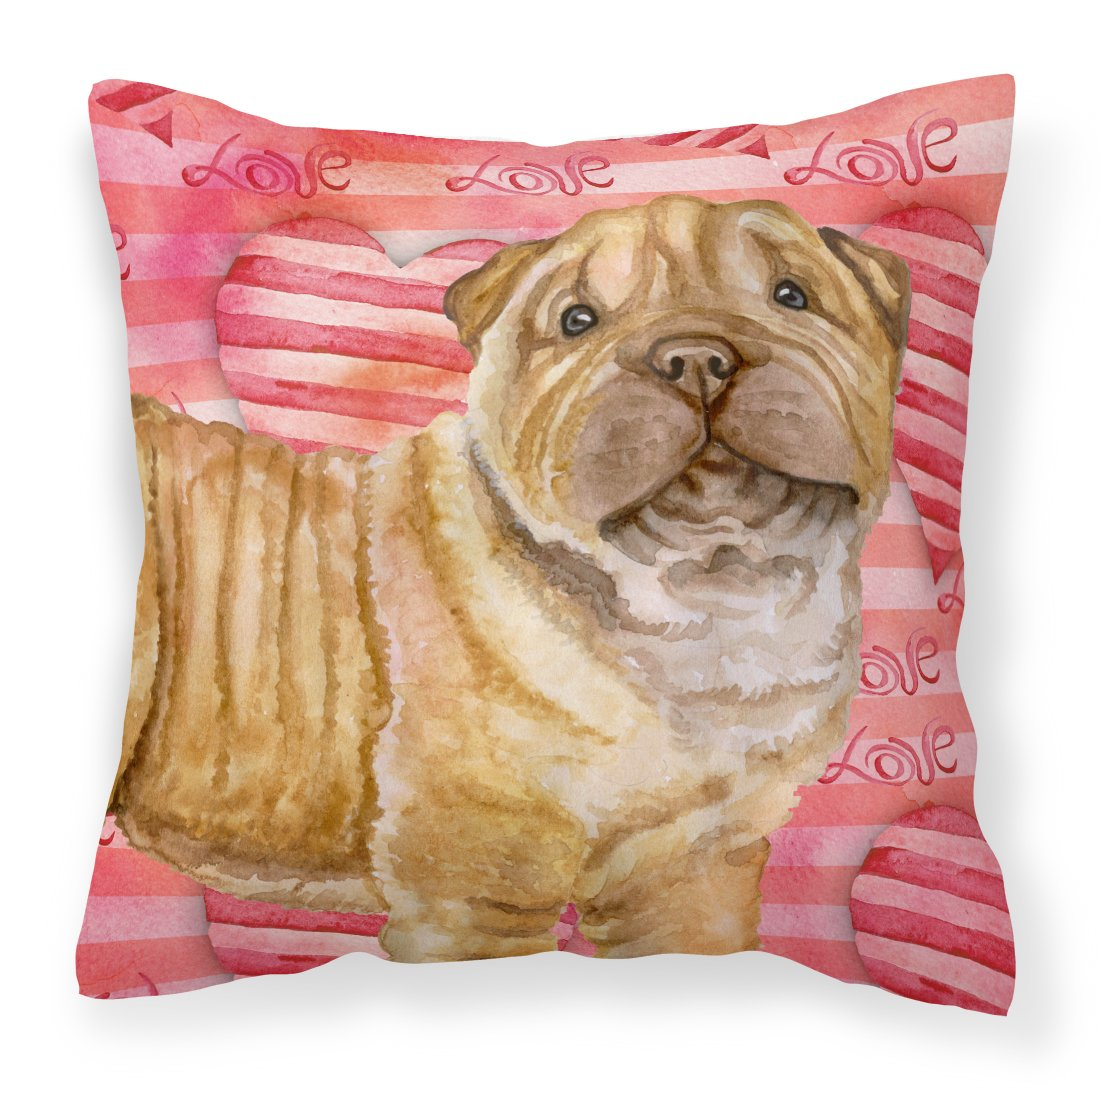 Buy this Shar Pei Puppy Love Fabric Decorative Pillow